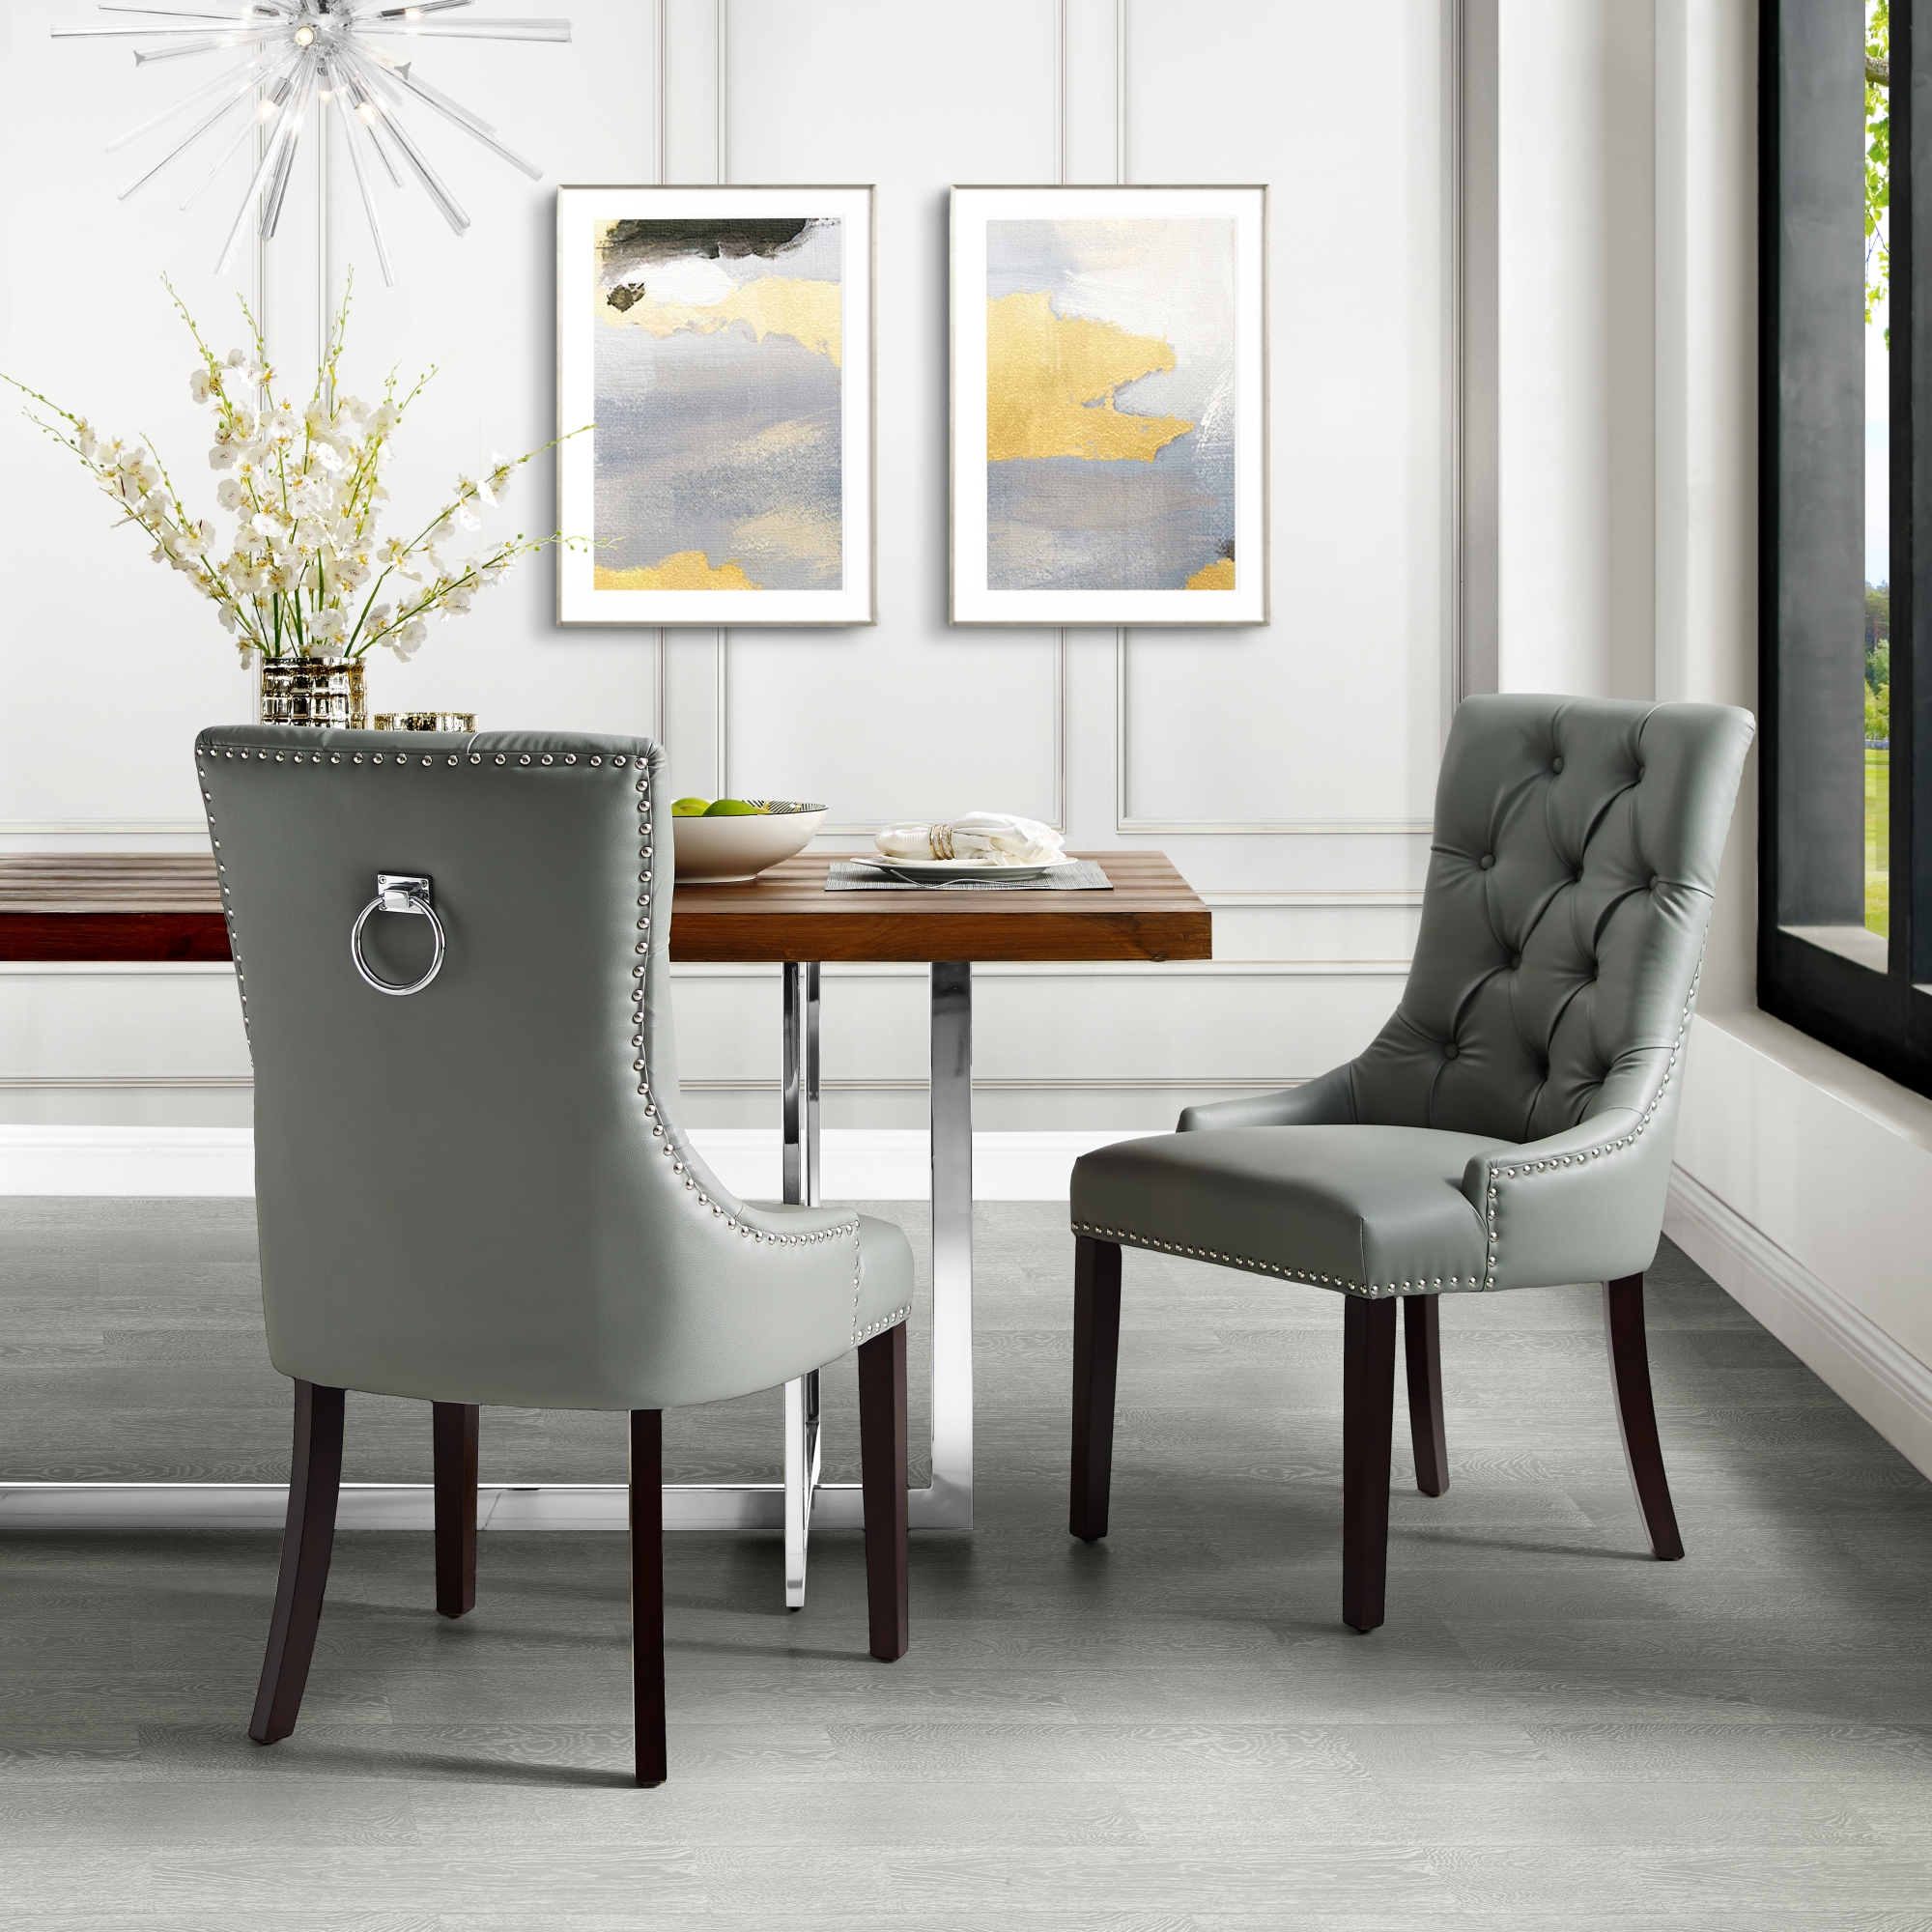 Faith Light Grey Leather Pu Dining Chair Set Of 2 Tufted Ring Handle Chrome Nailhead Finish Walmart with regard to dimensions 2000 X 2000